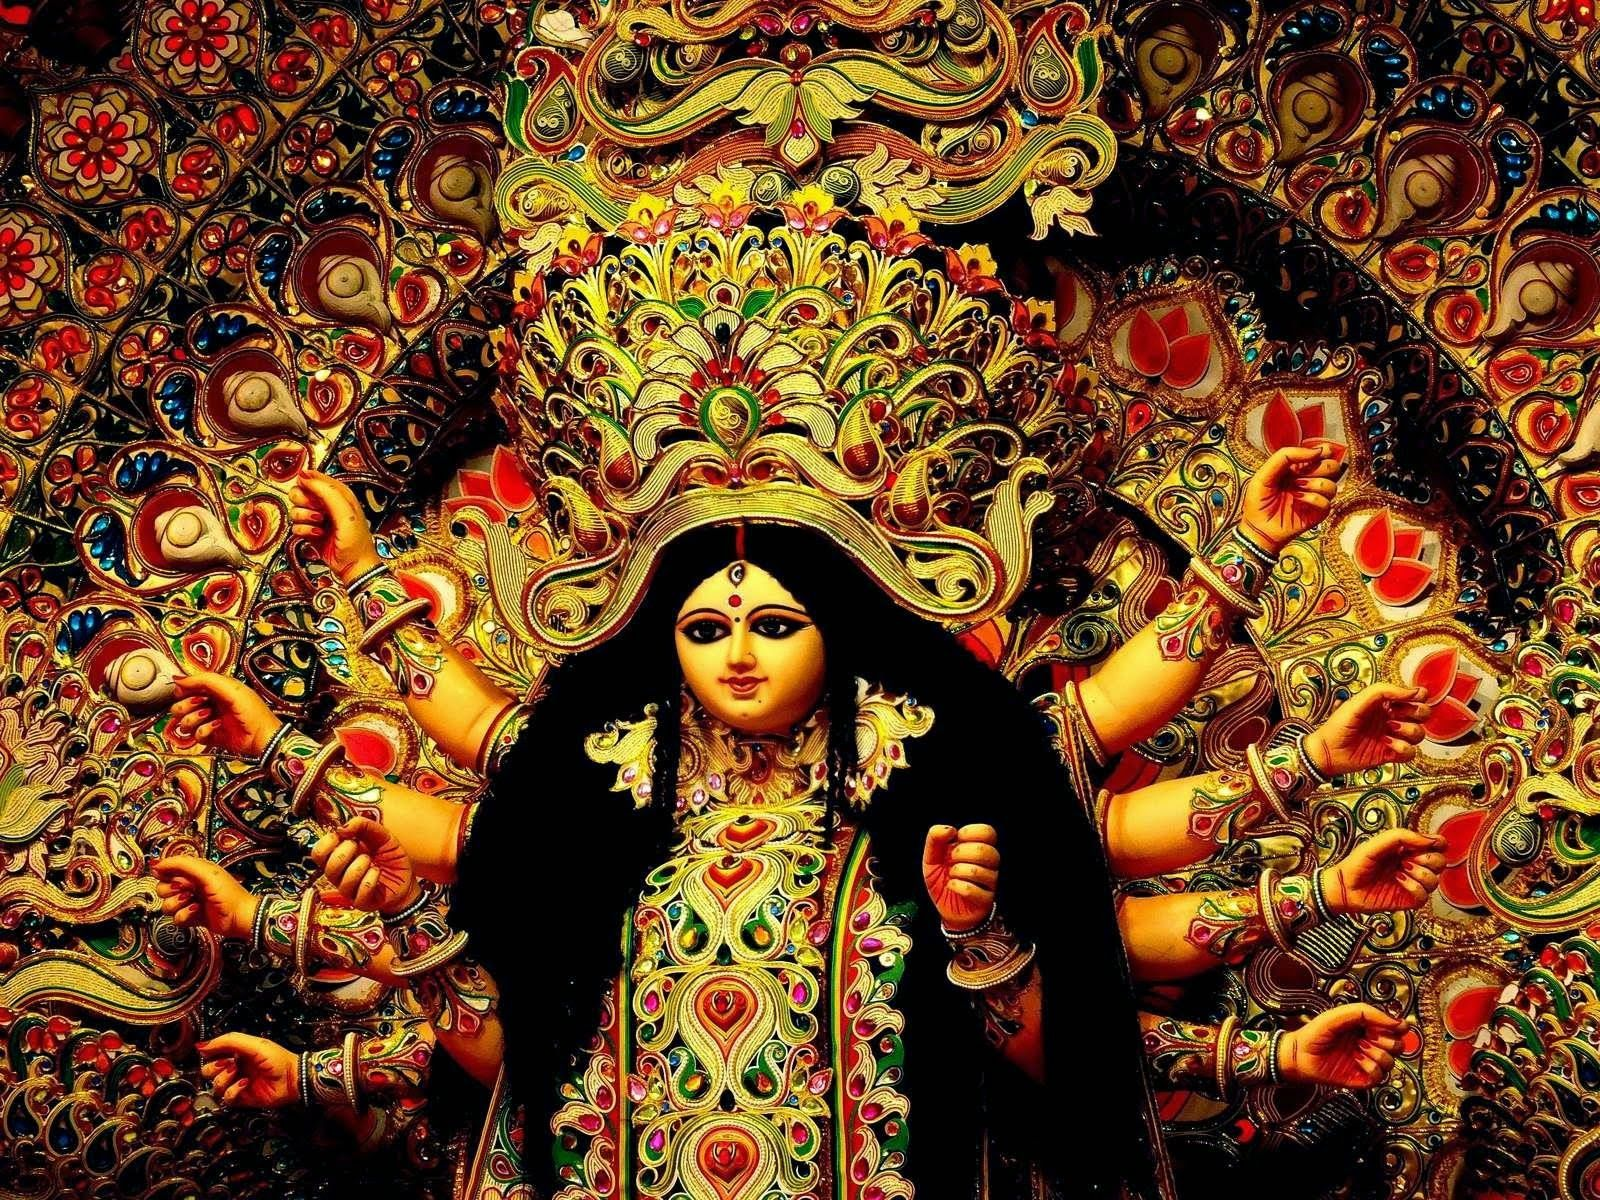 Wallpaper download durga maa - 8 Latest Maa Durga Wallpaper Free Download Updated 2017